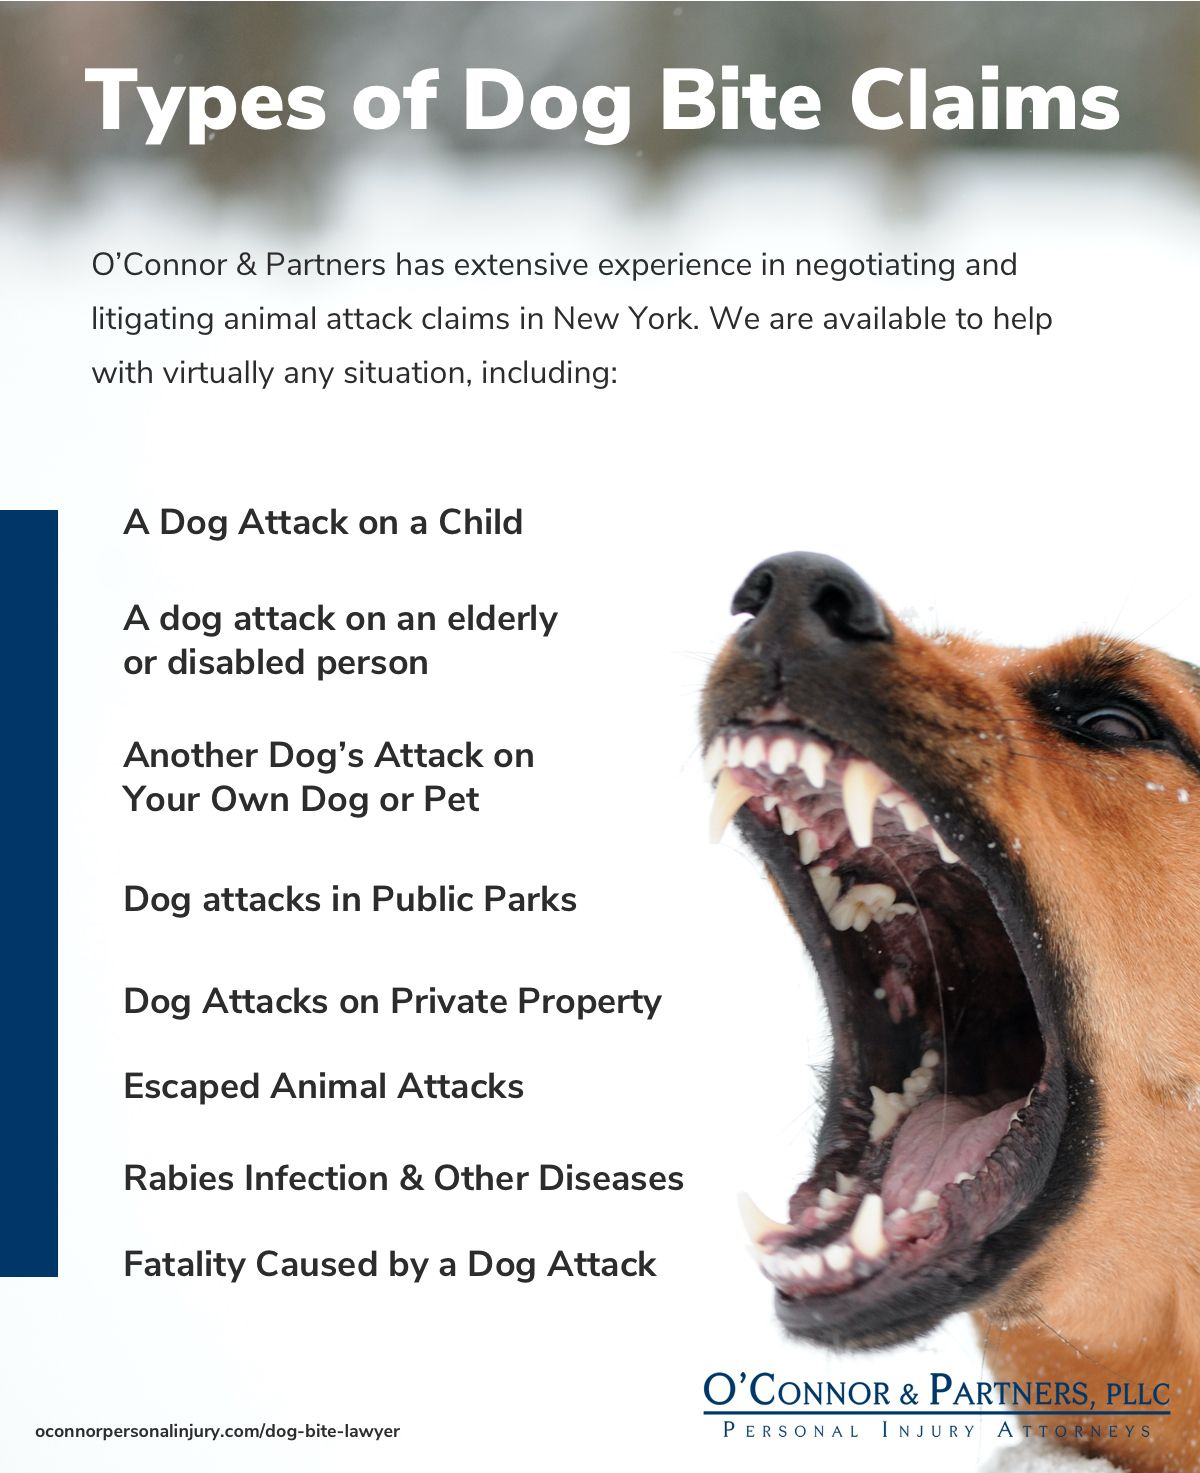 Examples of Dog Bite Injury Claims